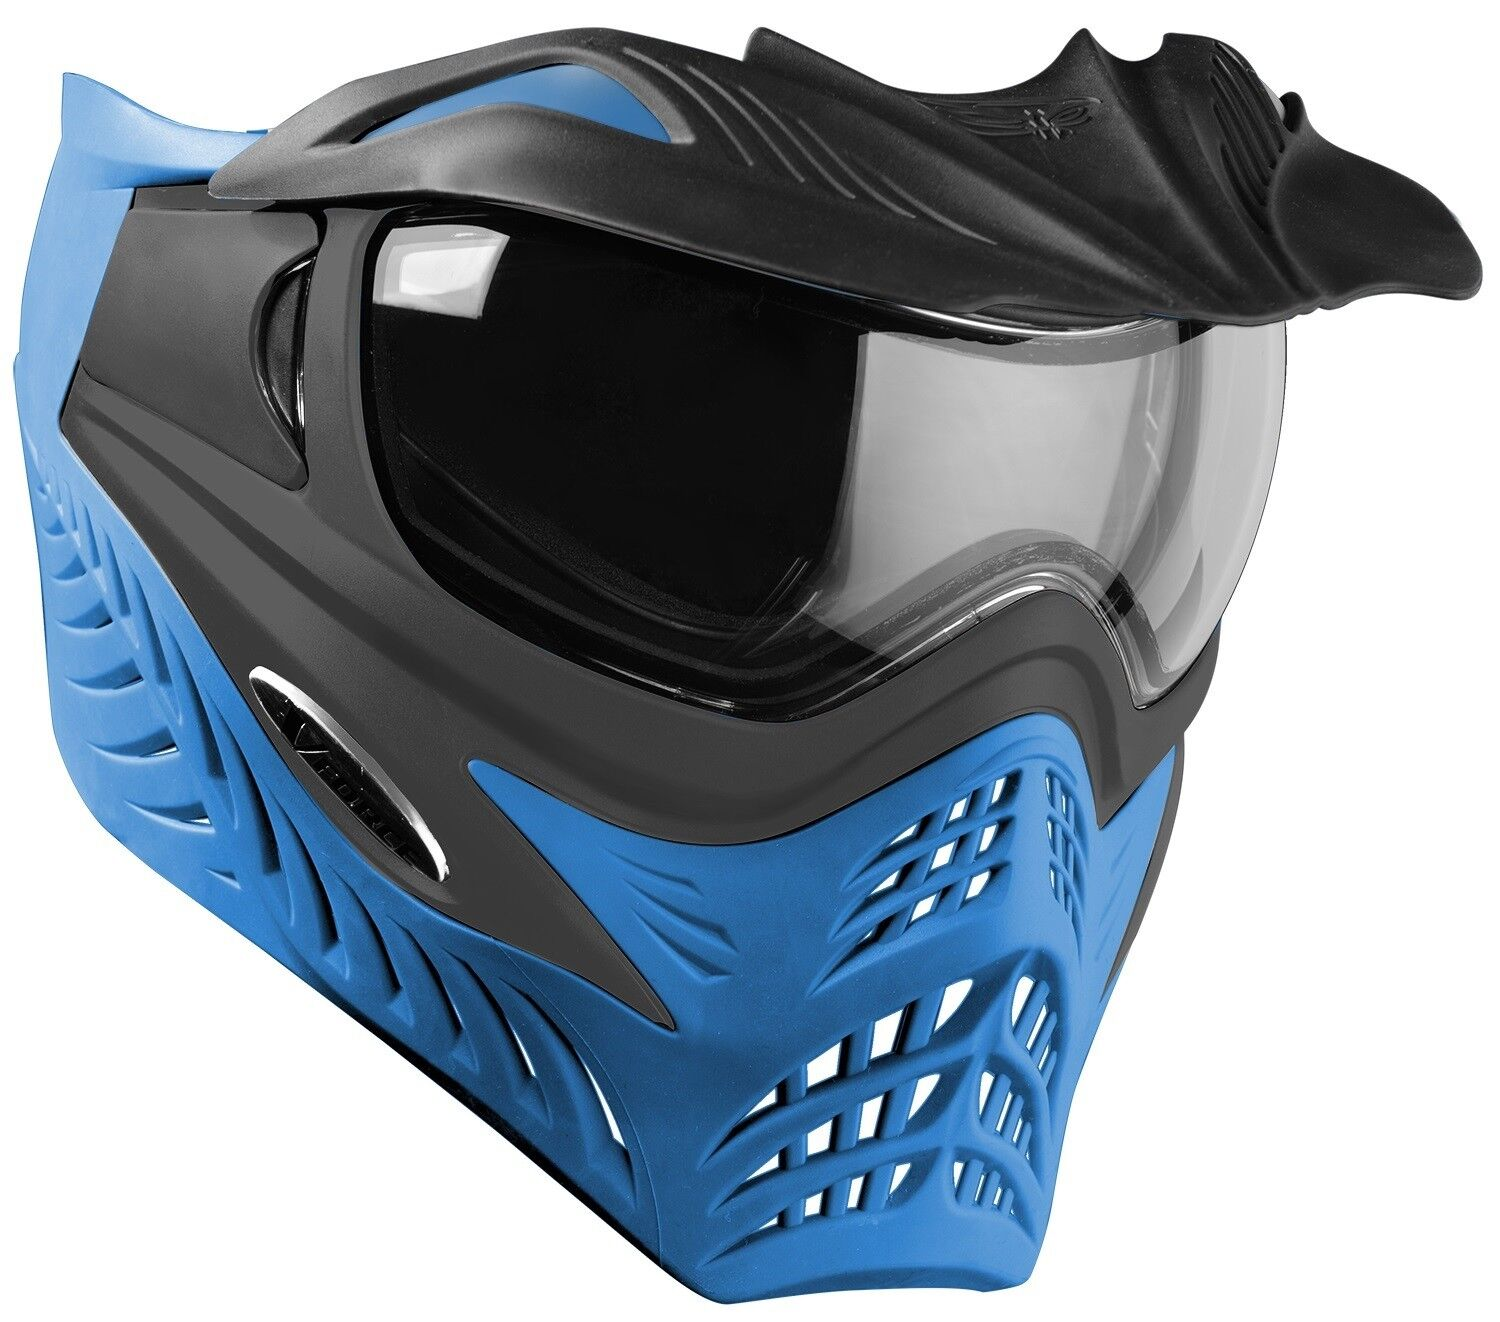 New VForce V-Force Grill Thermal Goggles Mask SF - Azure - Charcoal on bluee